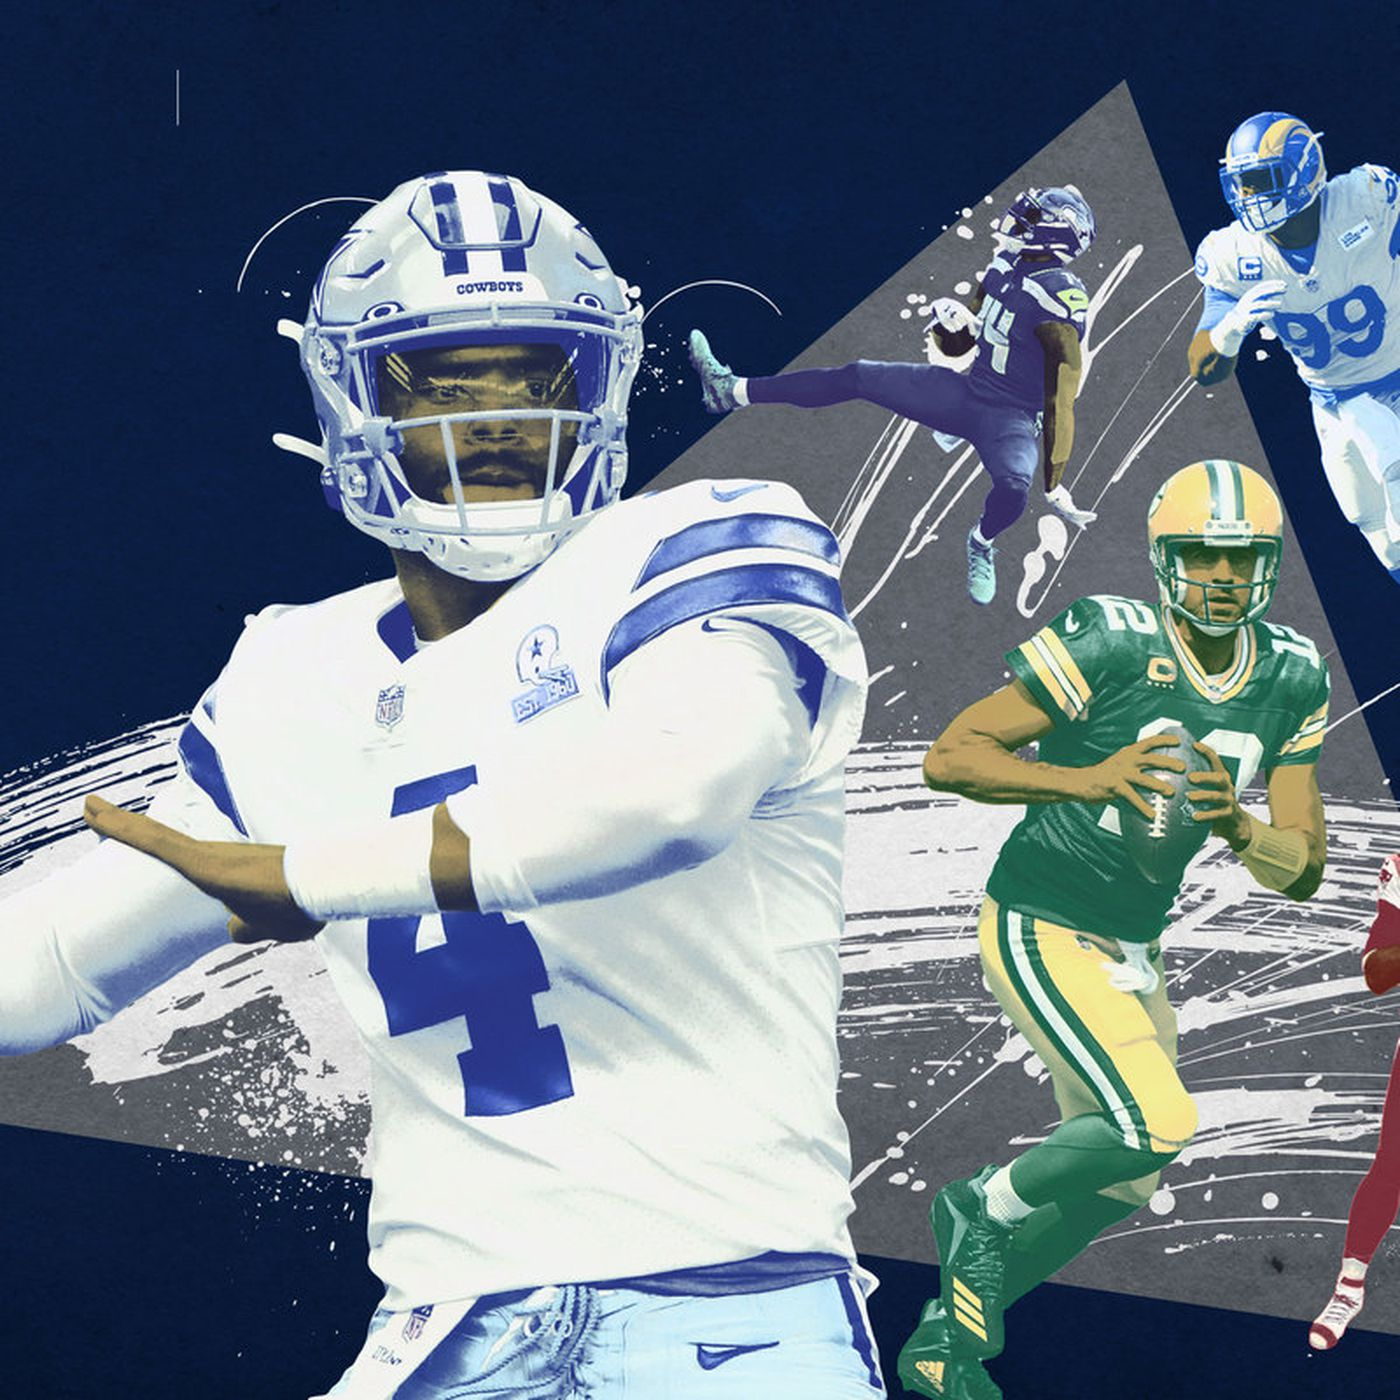 Nfl Power Rankings The War Of Attrition Leaves Some Teams Scrambling The Ringer